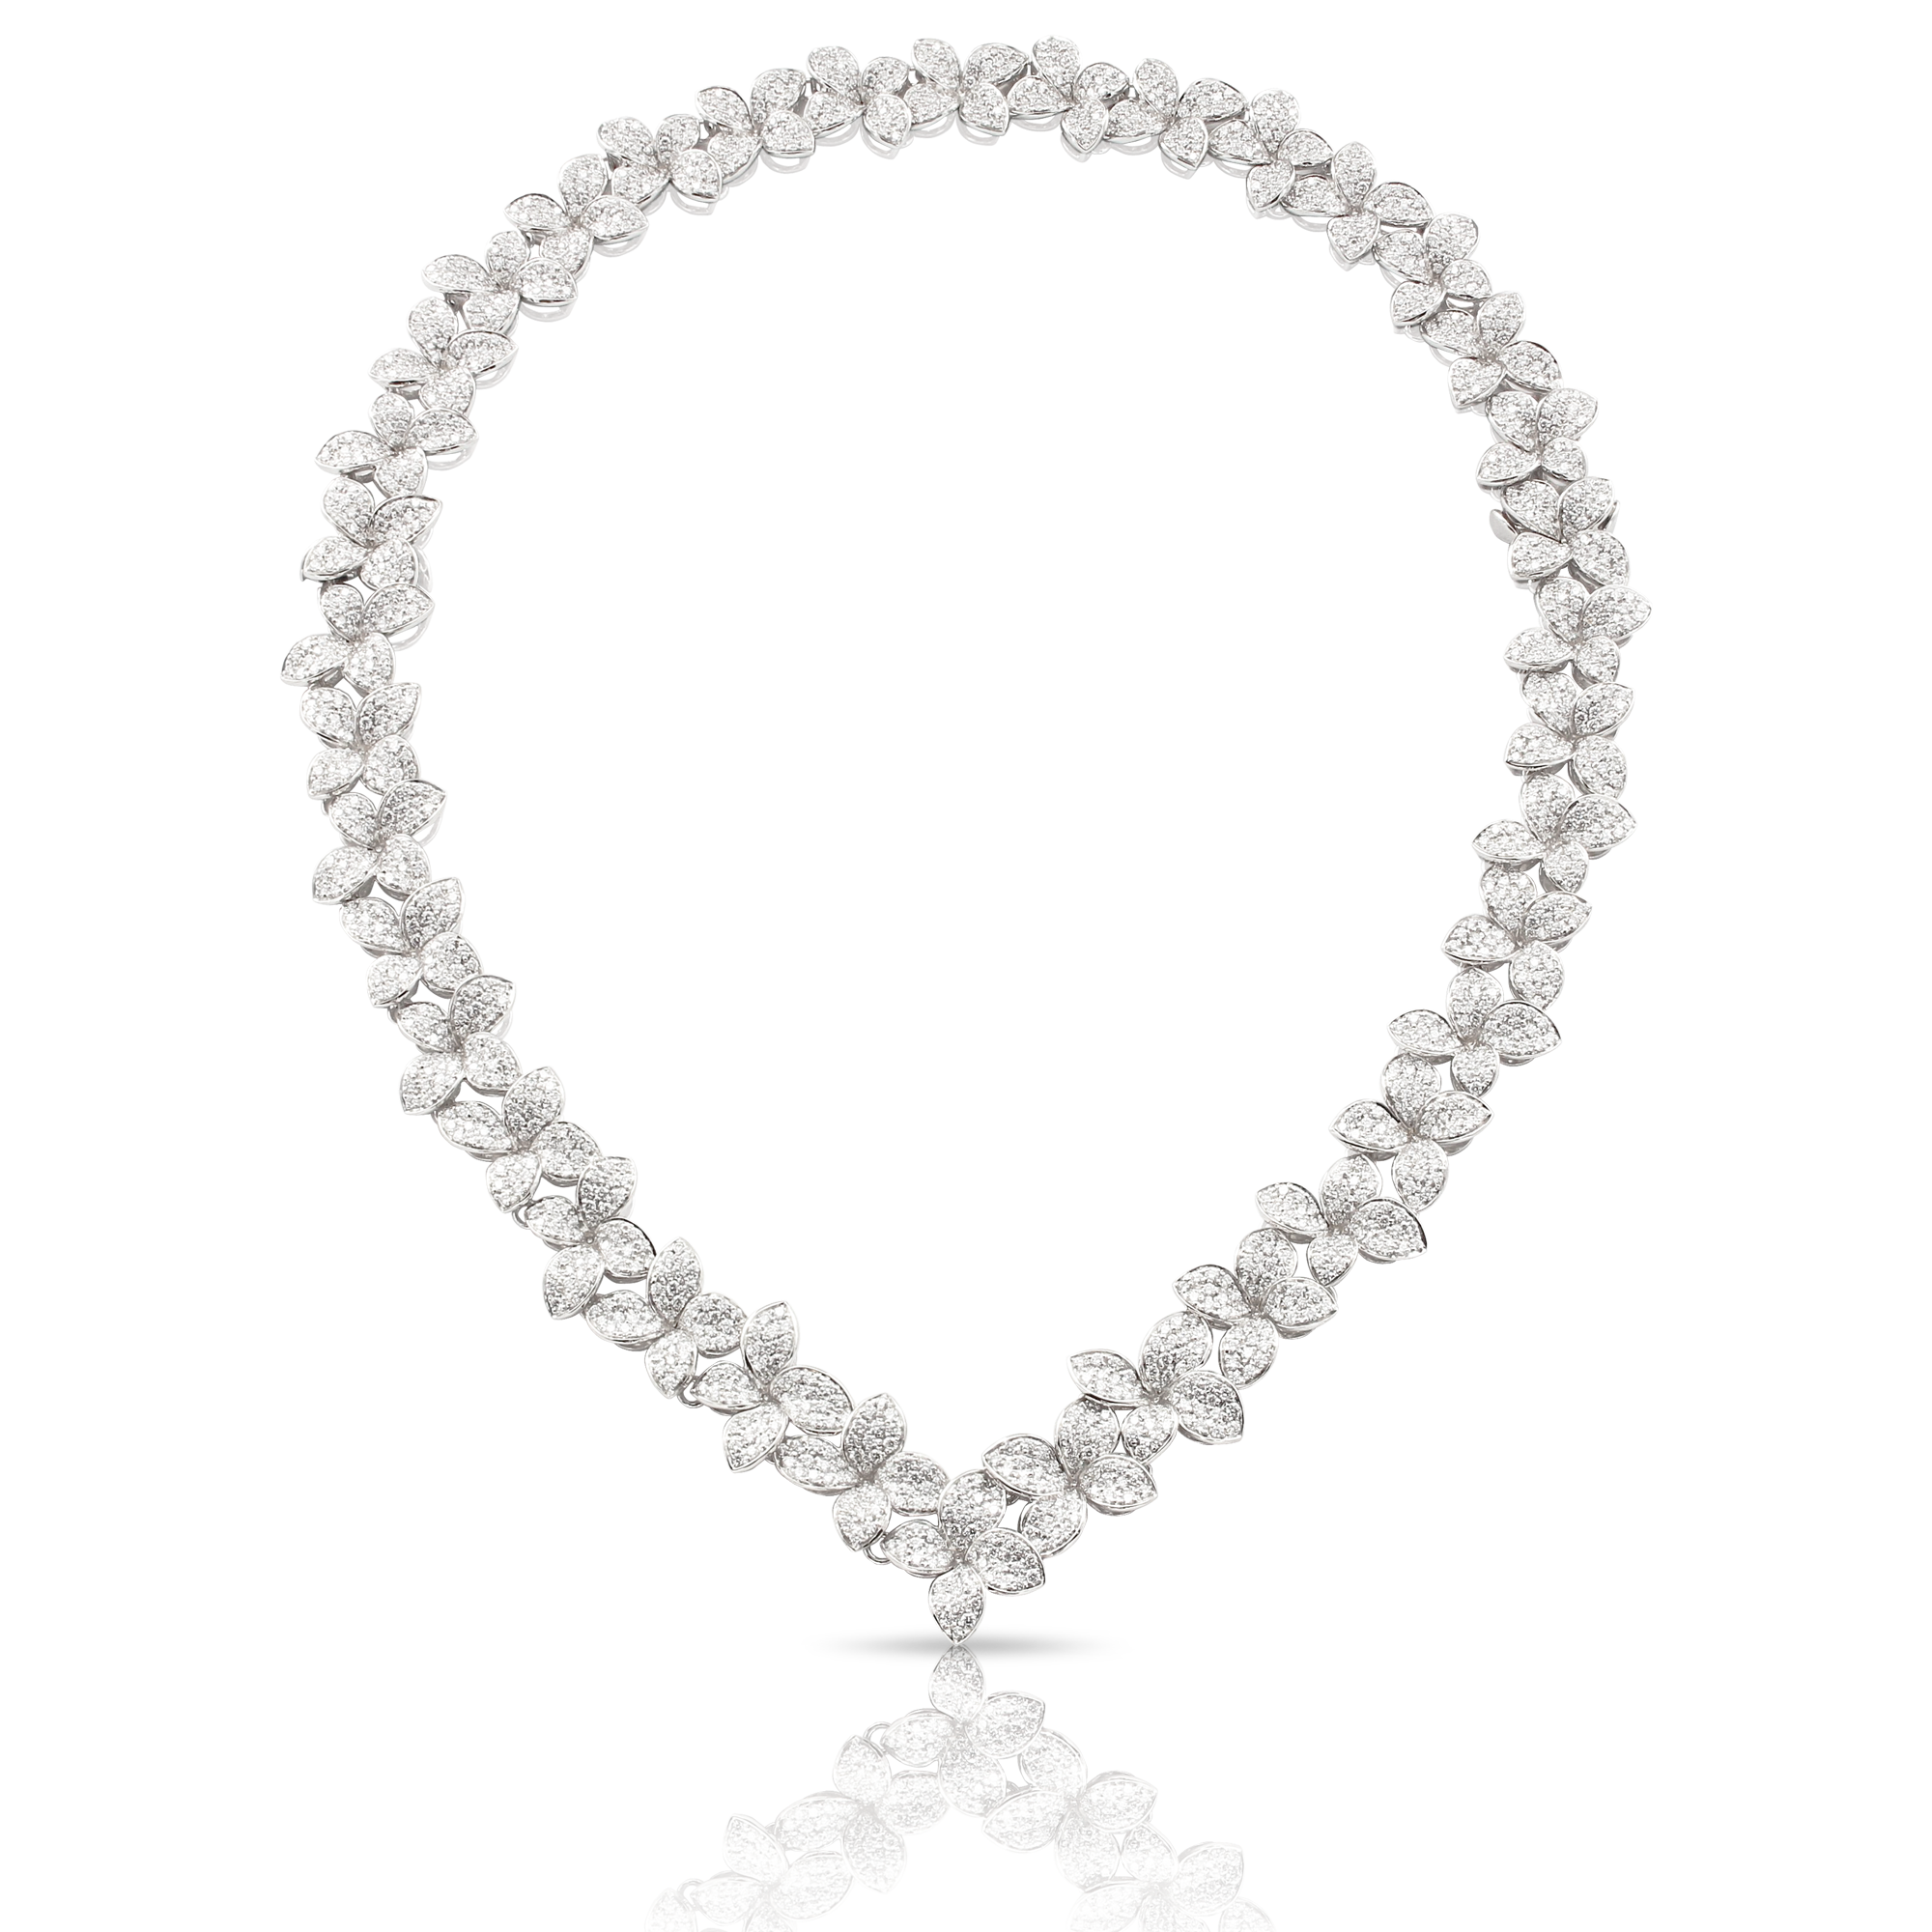 18k White Gold Goddess Garden Necklace with White Diamonds